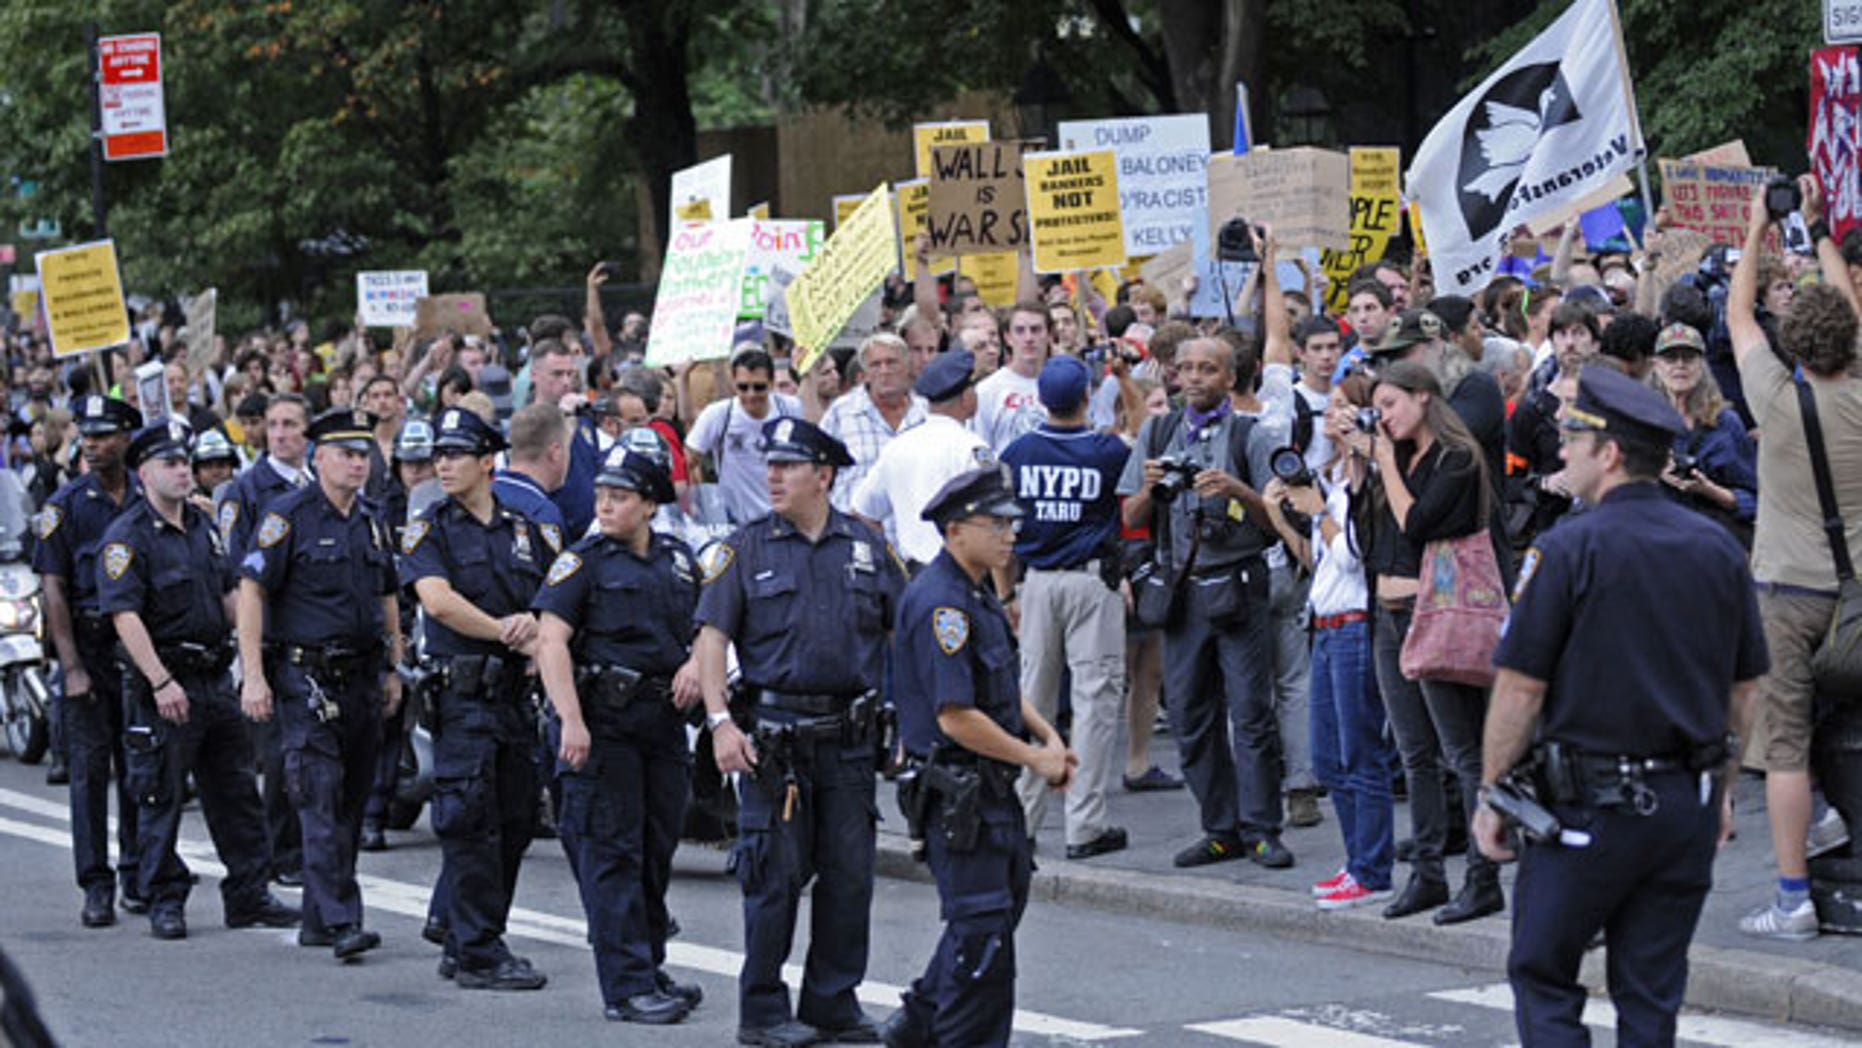 September 30: A several block long crowd of protestors march up Broadway towards Police Headquarters in New York.